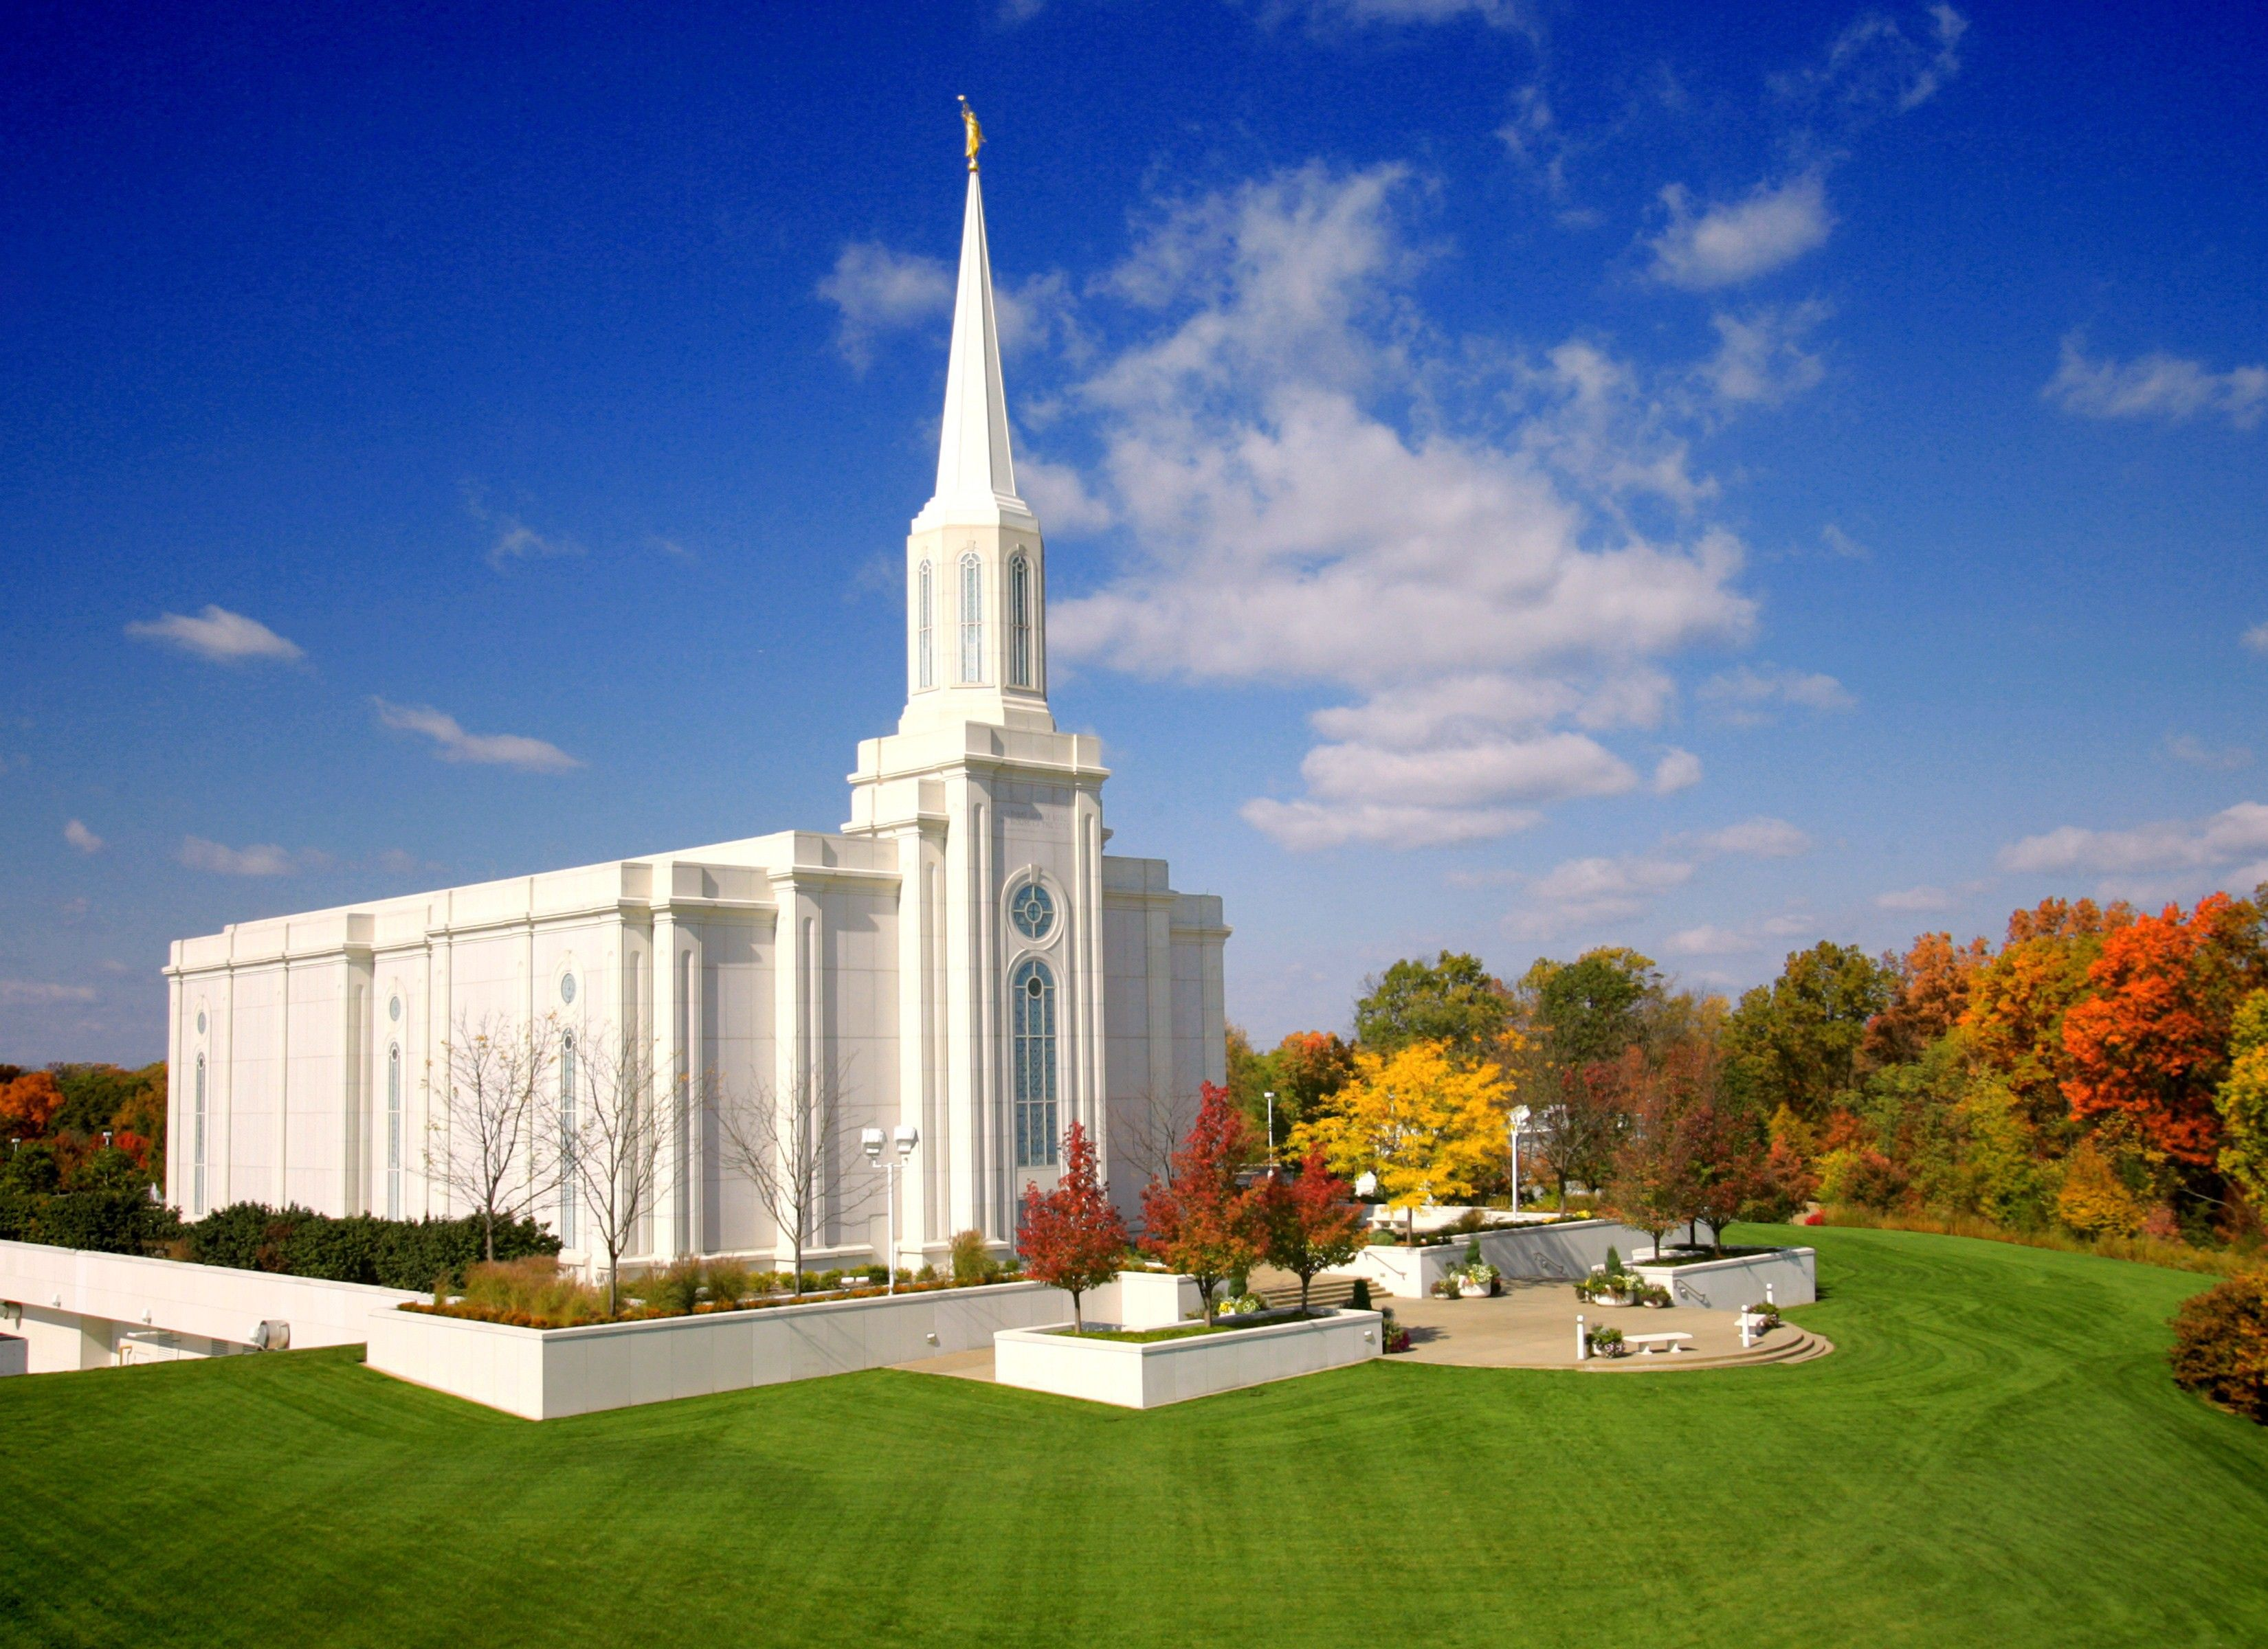 The entire St. Louis Missouri Temple in the fall, including the entrance and scenery.